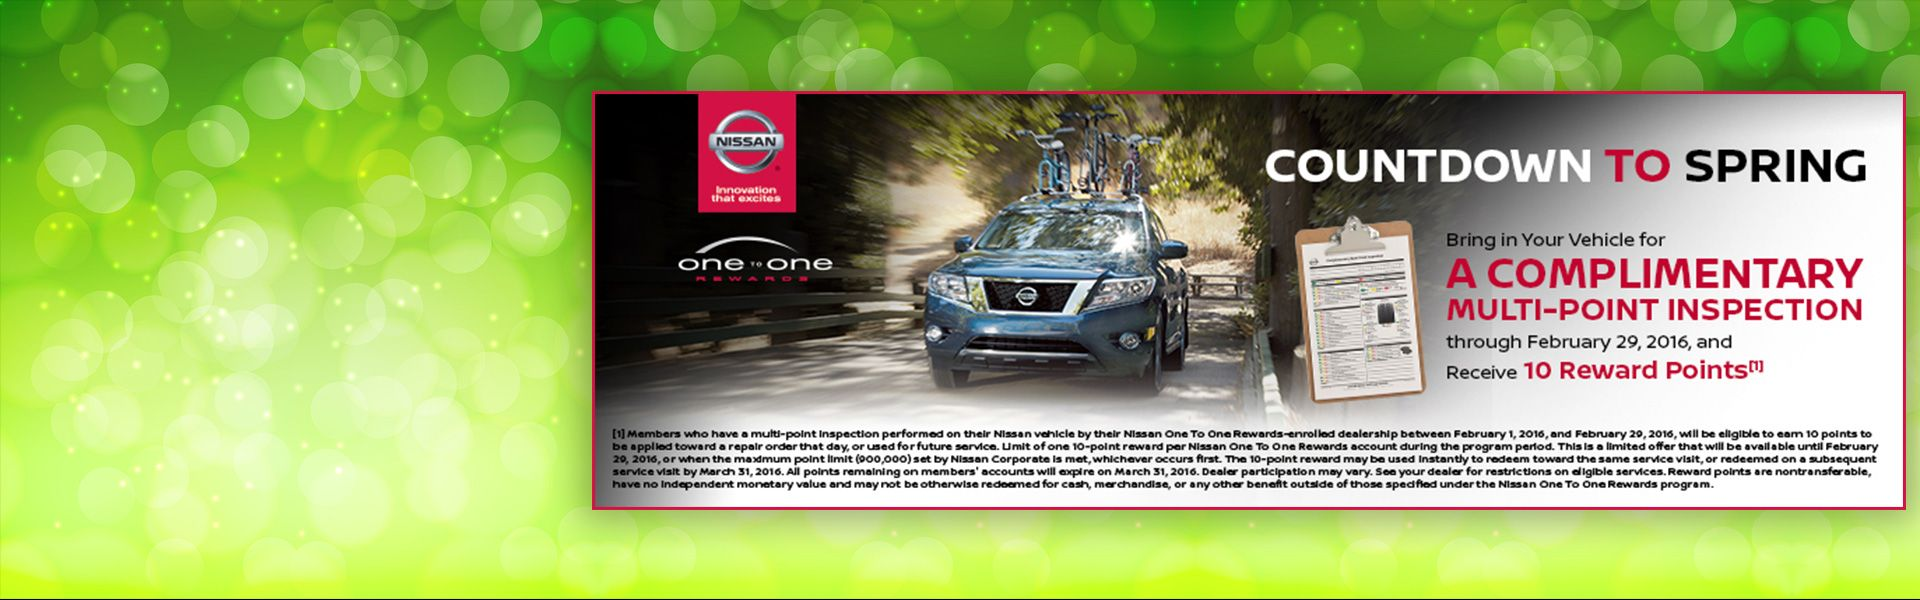 Nissan South Morrow New And Used Car Dealership Near Atlanta Ga Nissan New And Used Cars Car Dealership